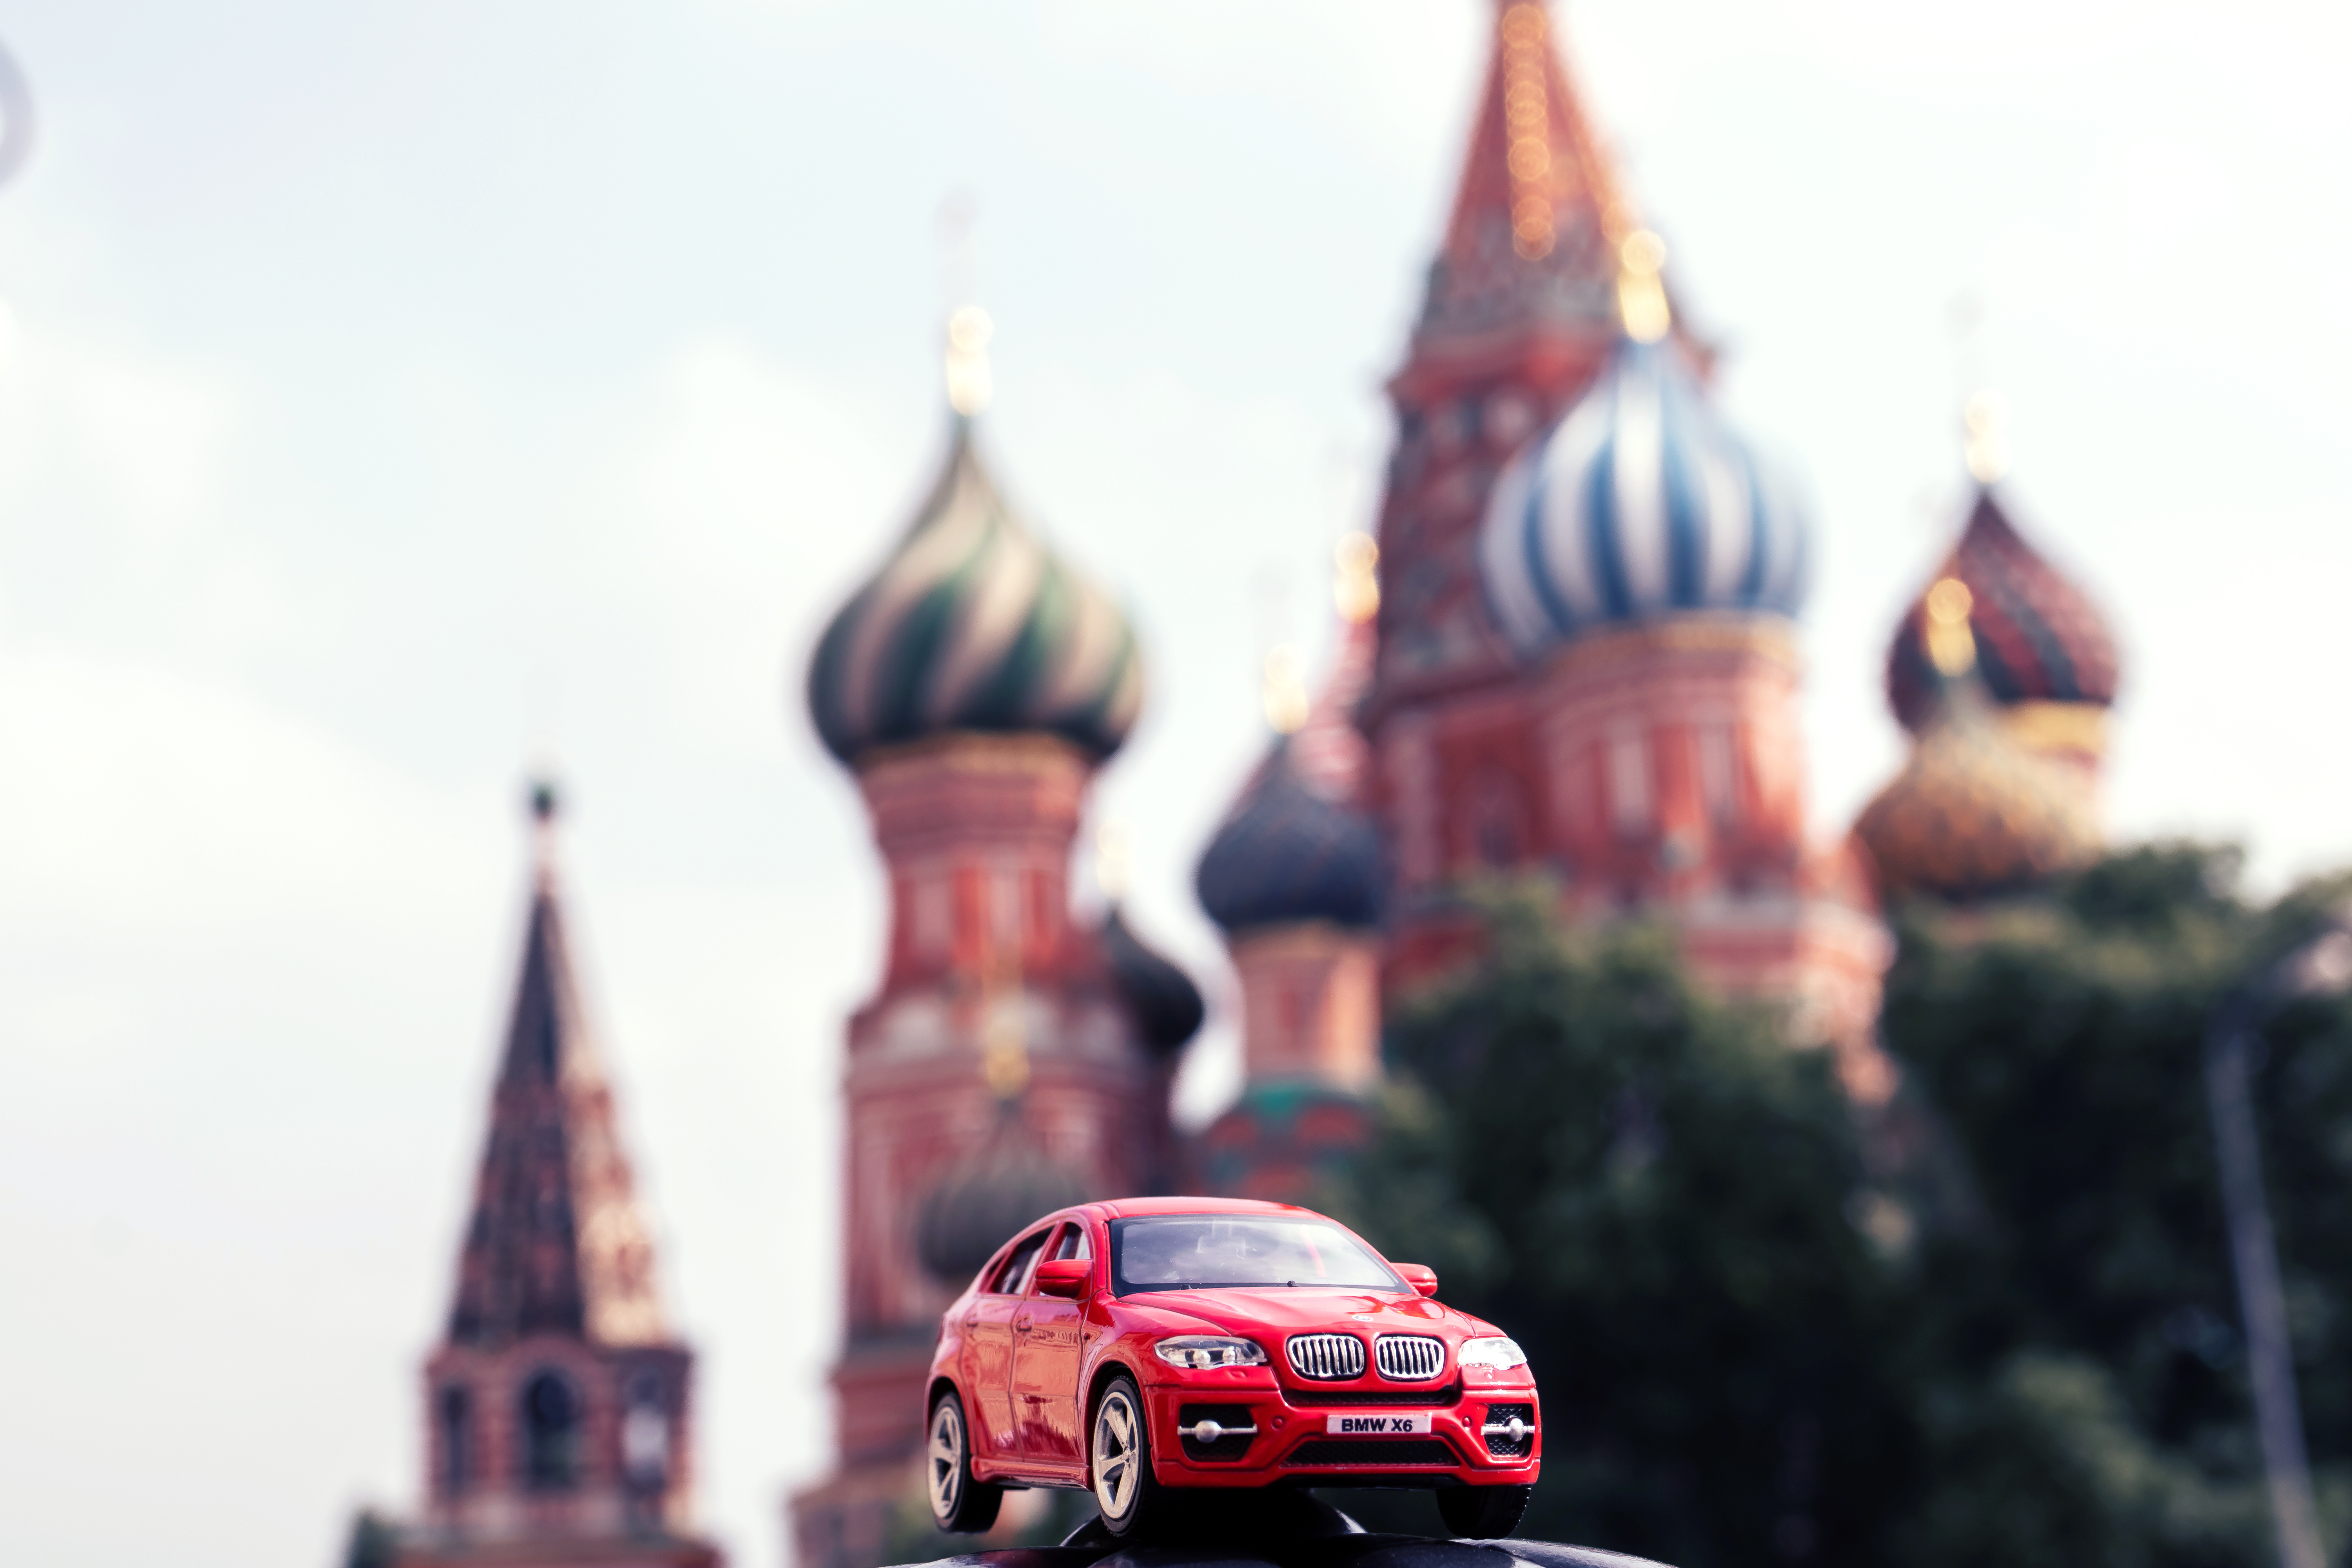 Red Car Scale Model